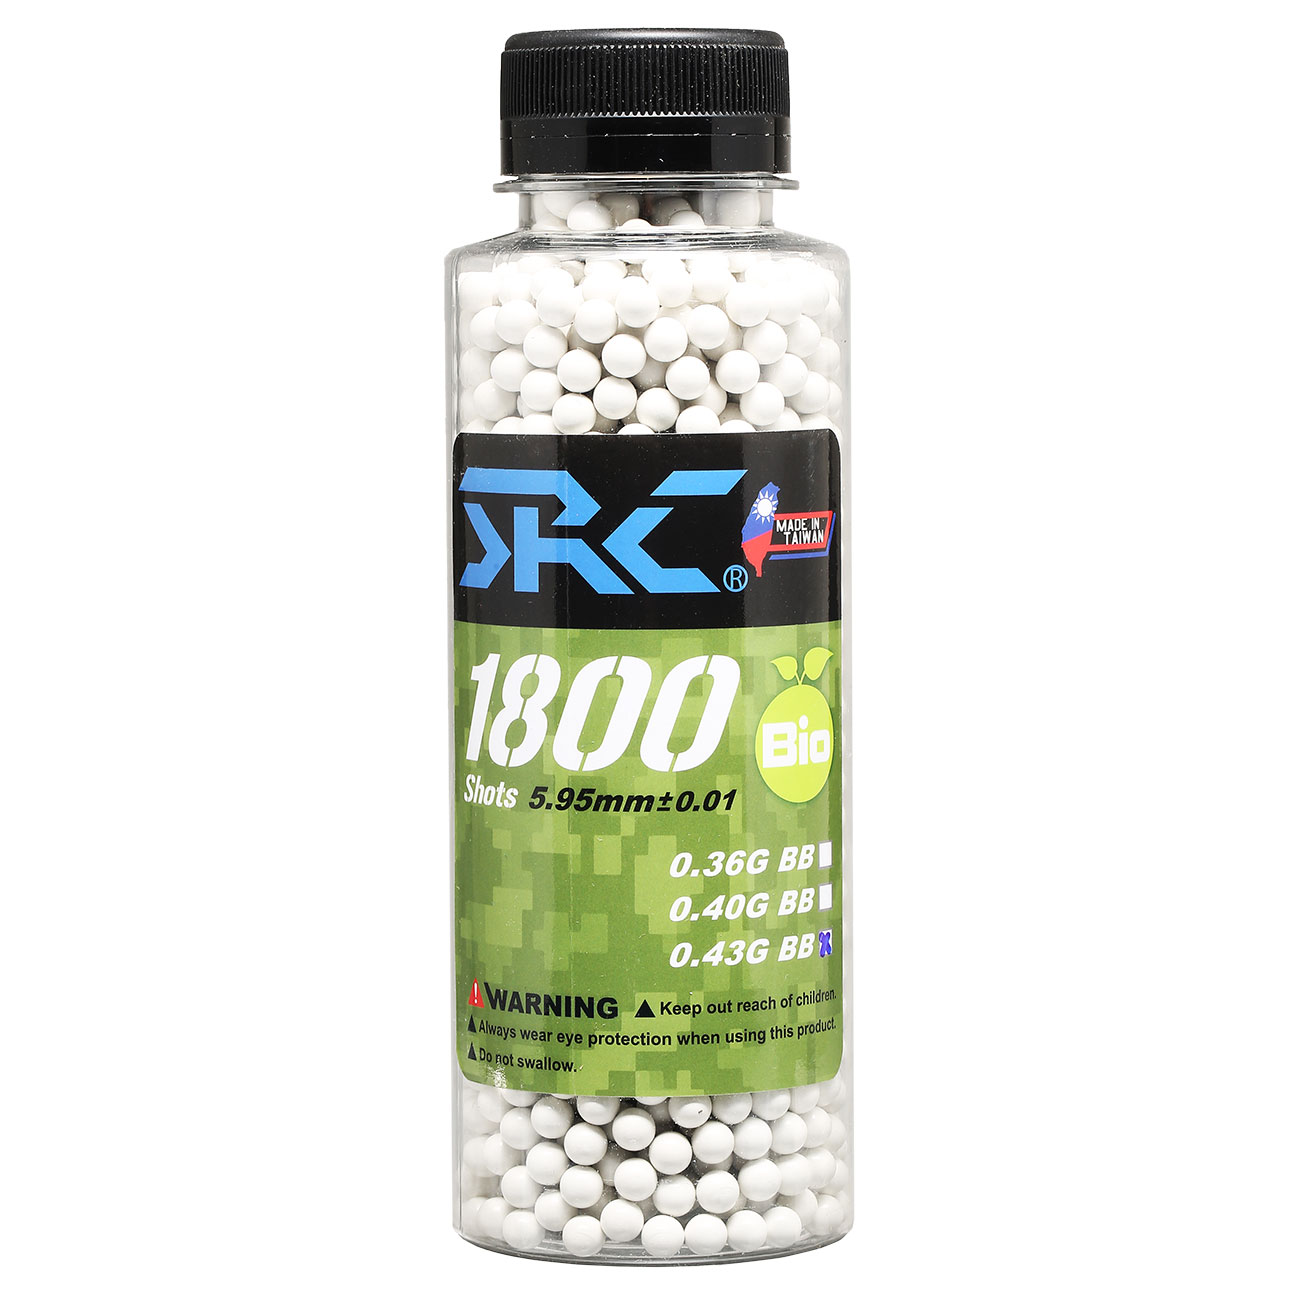 SRC High Precision Perfect Bio BBs 0,43g 1.800er Flasche weiss 0